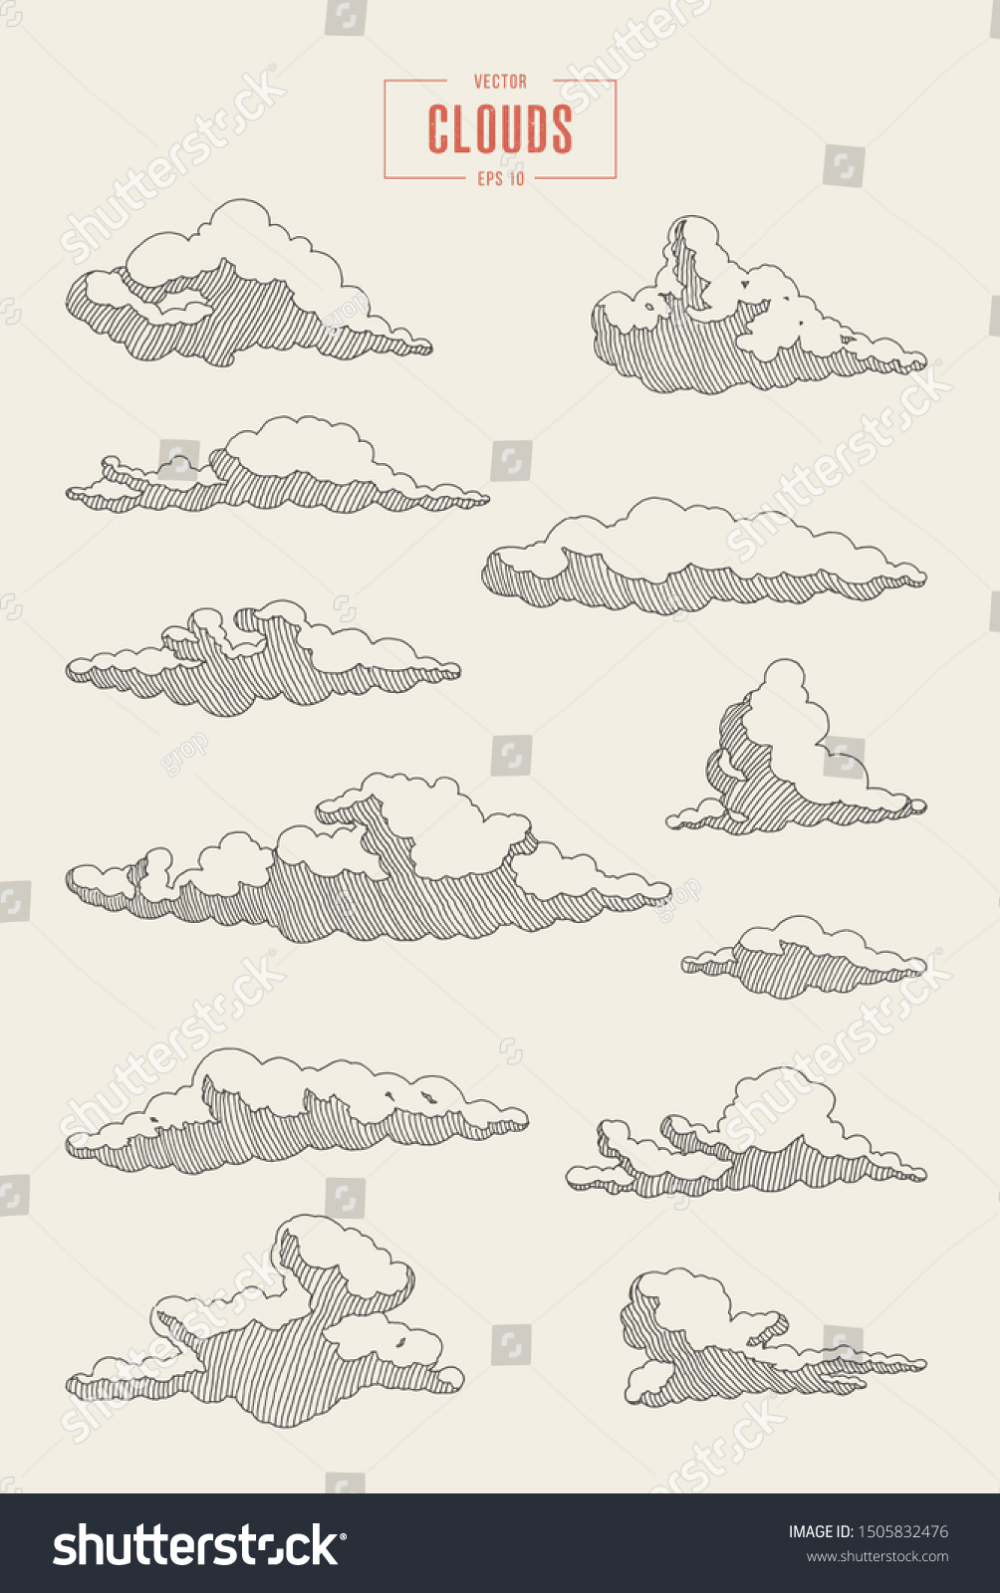 Collection Engraved Style Clouds Hand Drawn Stock